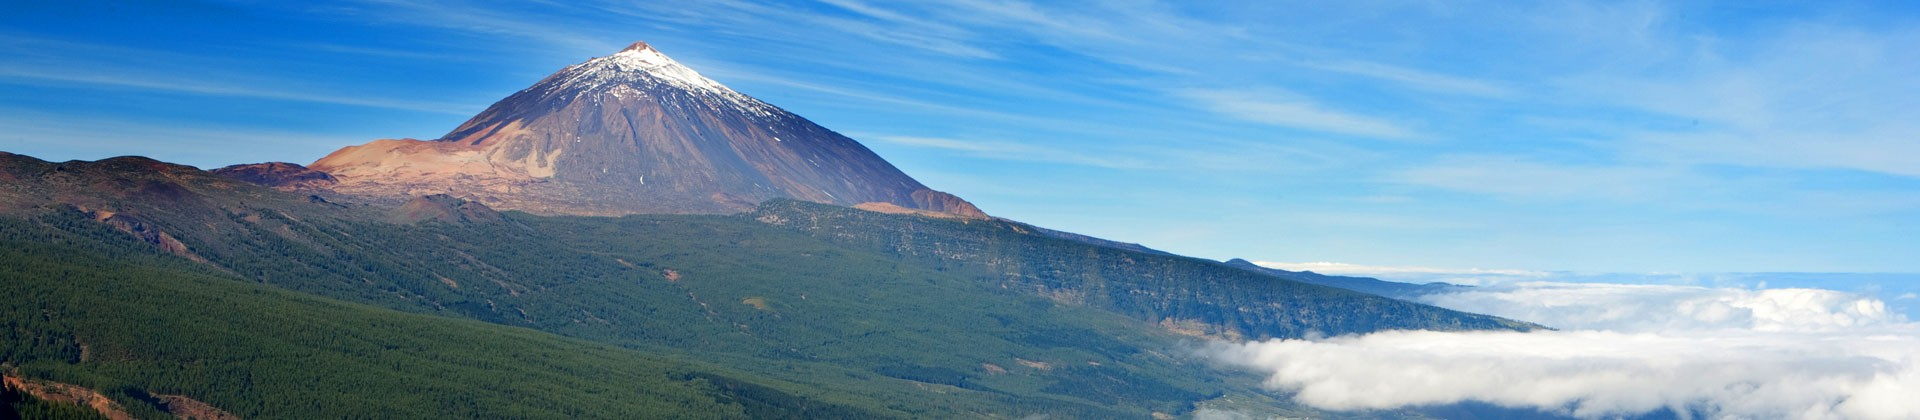 https://www.goodmorningtenerife.com/wp-content/uploads/2014/08/06_slide_teide_GM_Tenerife1-1920x420.jpg